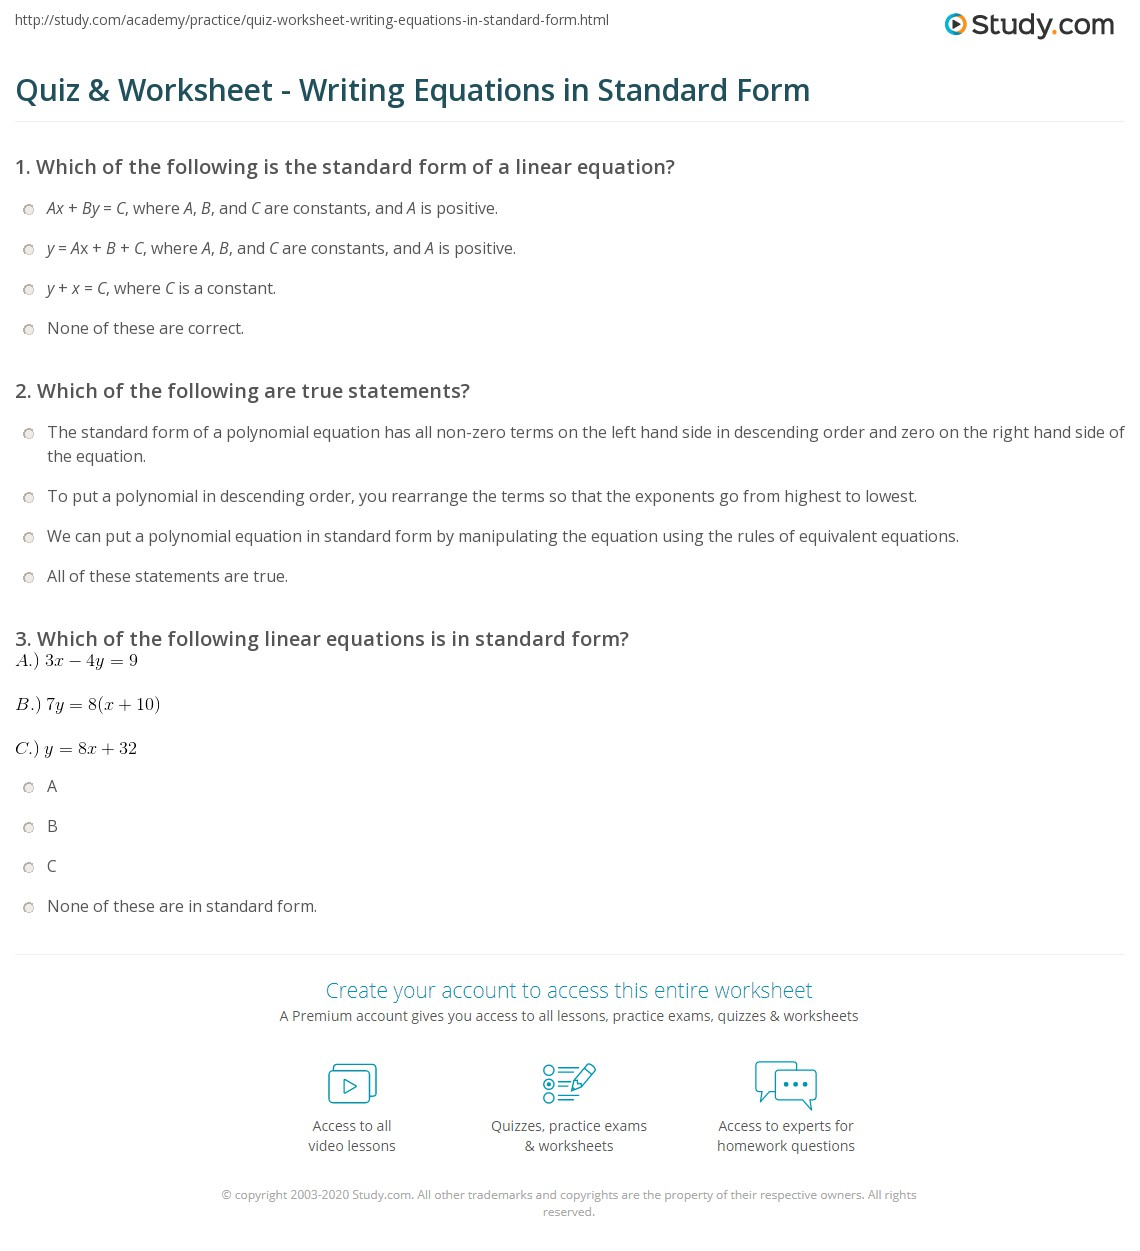 Standard Form Of A Linear Equation Worksheet Delibertad – Slope Intercept Form to Standard Form Worksheet